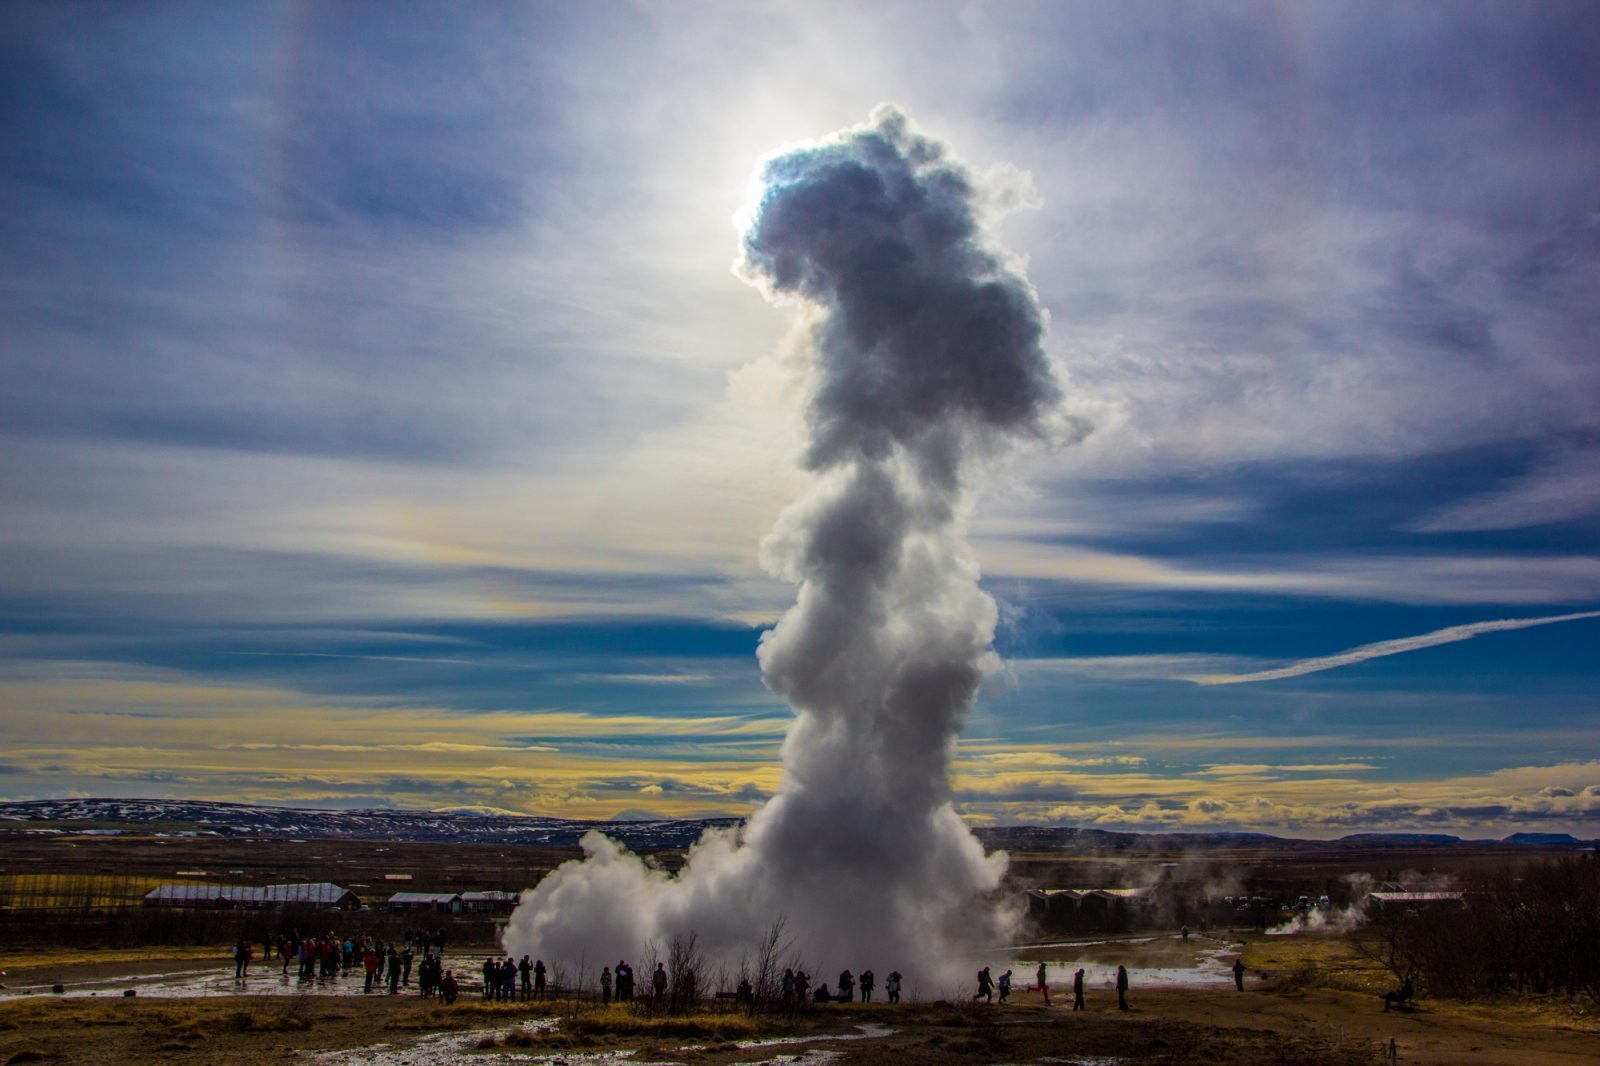 Geysir erupting in Iceland on Golden Circle tour